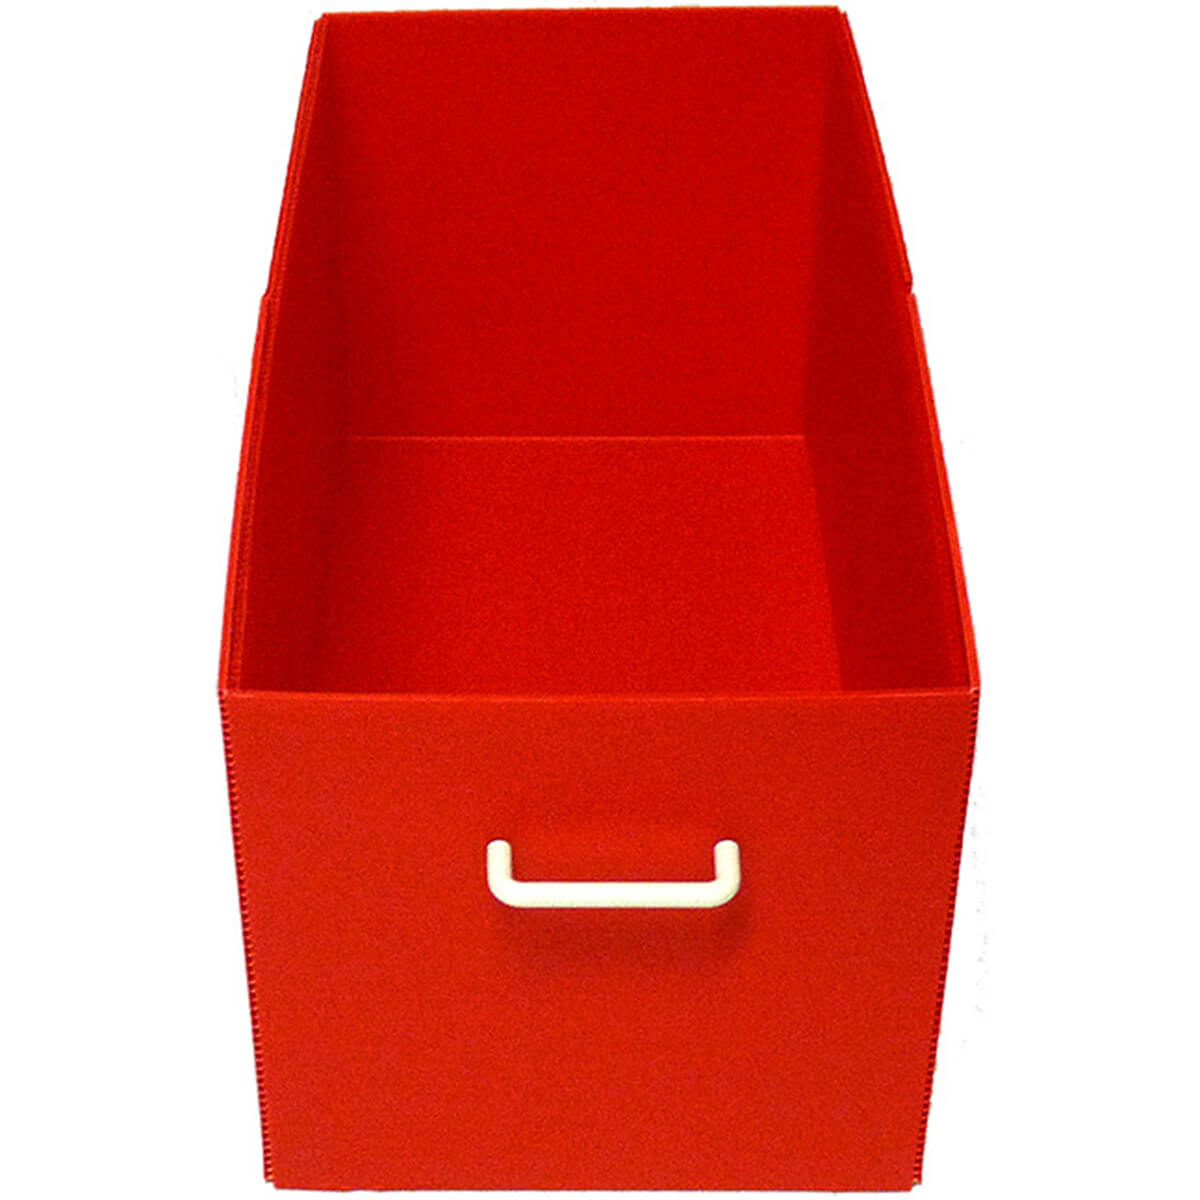 CAGE CUBBY BIN - STANDARD - CLEARANCE